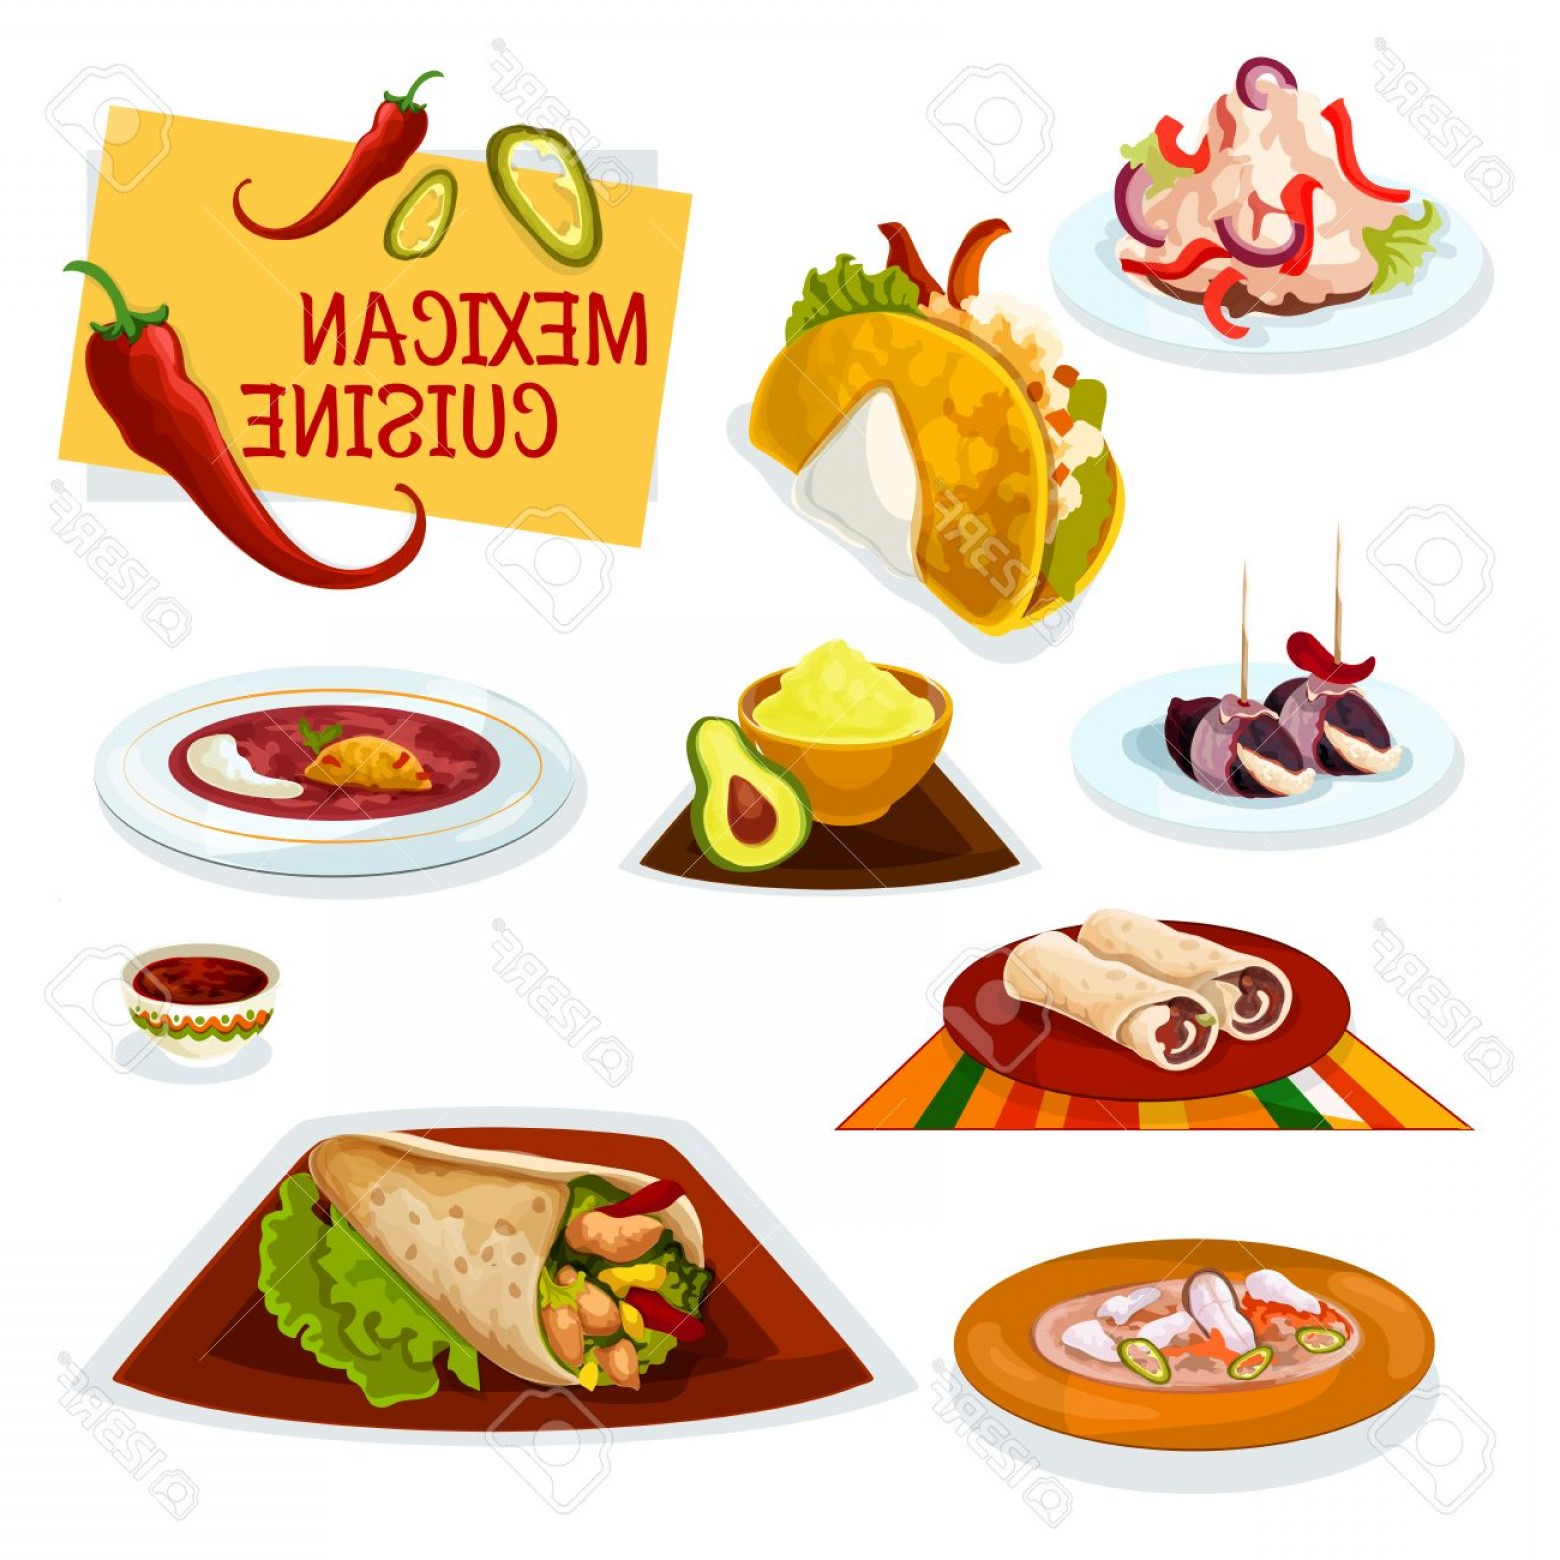 Steak Taco Vector Art: Photostock Vector Mexican Cuisine Cartoon Icon With Taco Burrito And Beef Tortilla Roll Bacon Tapas Avocado Guacamole